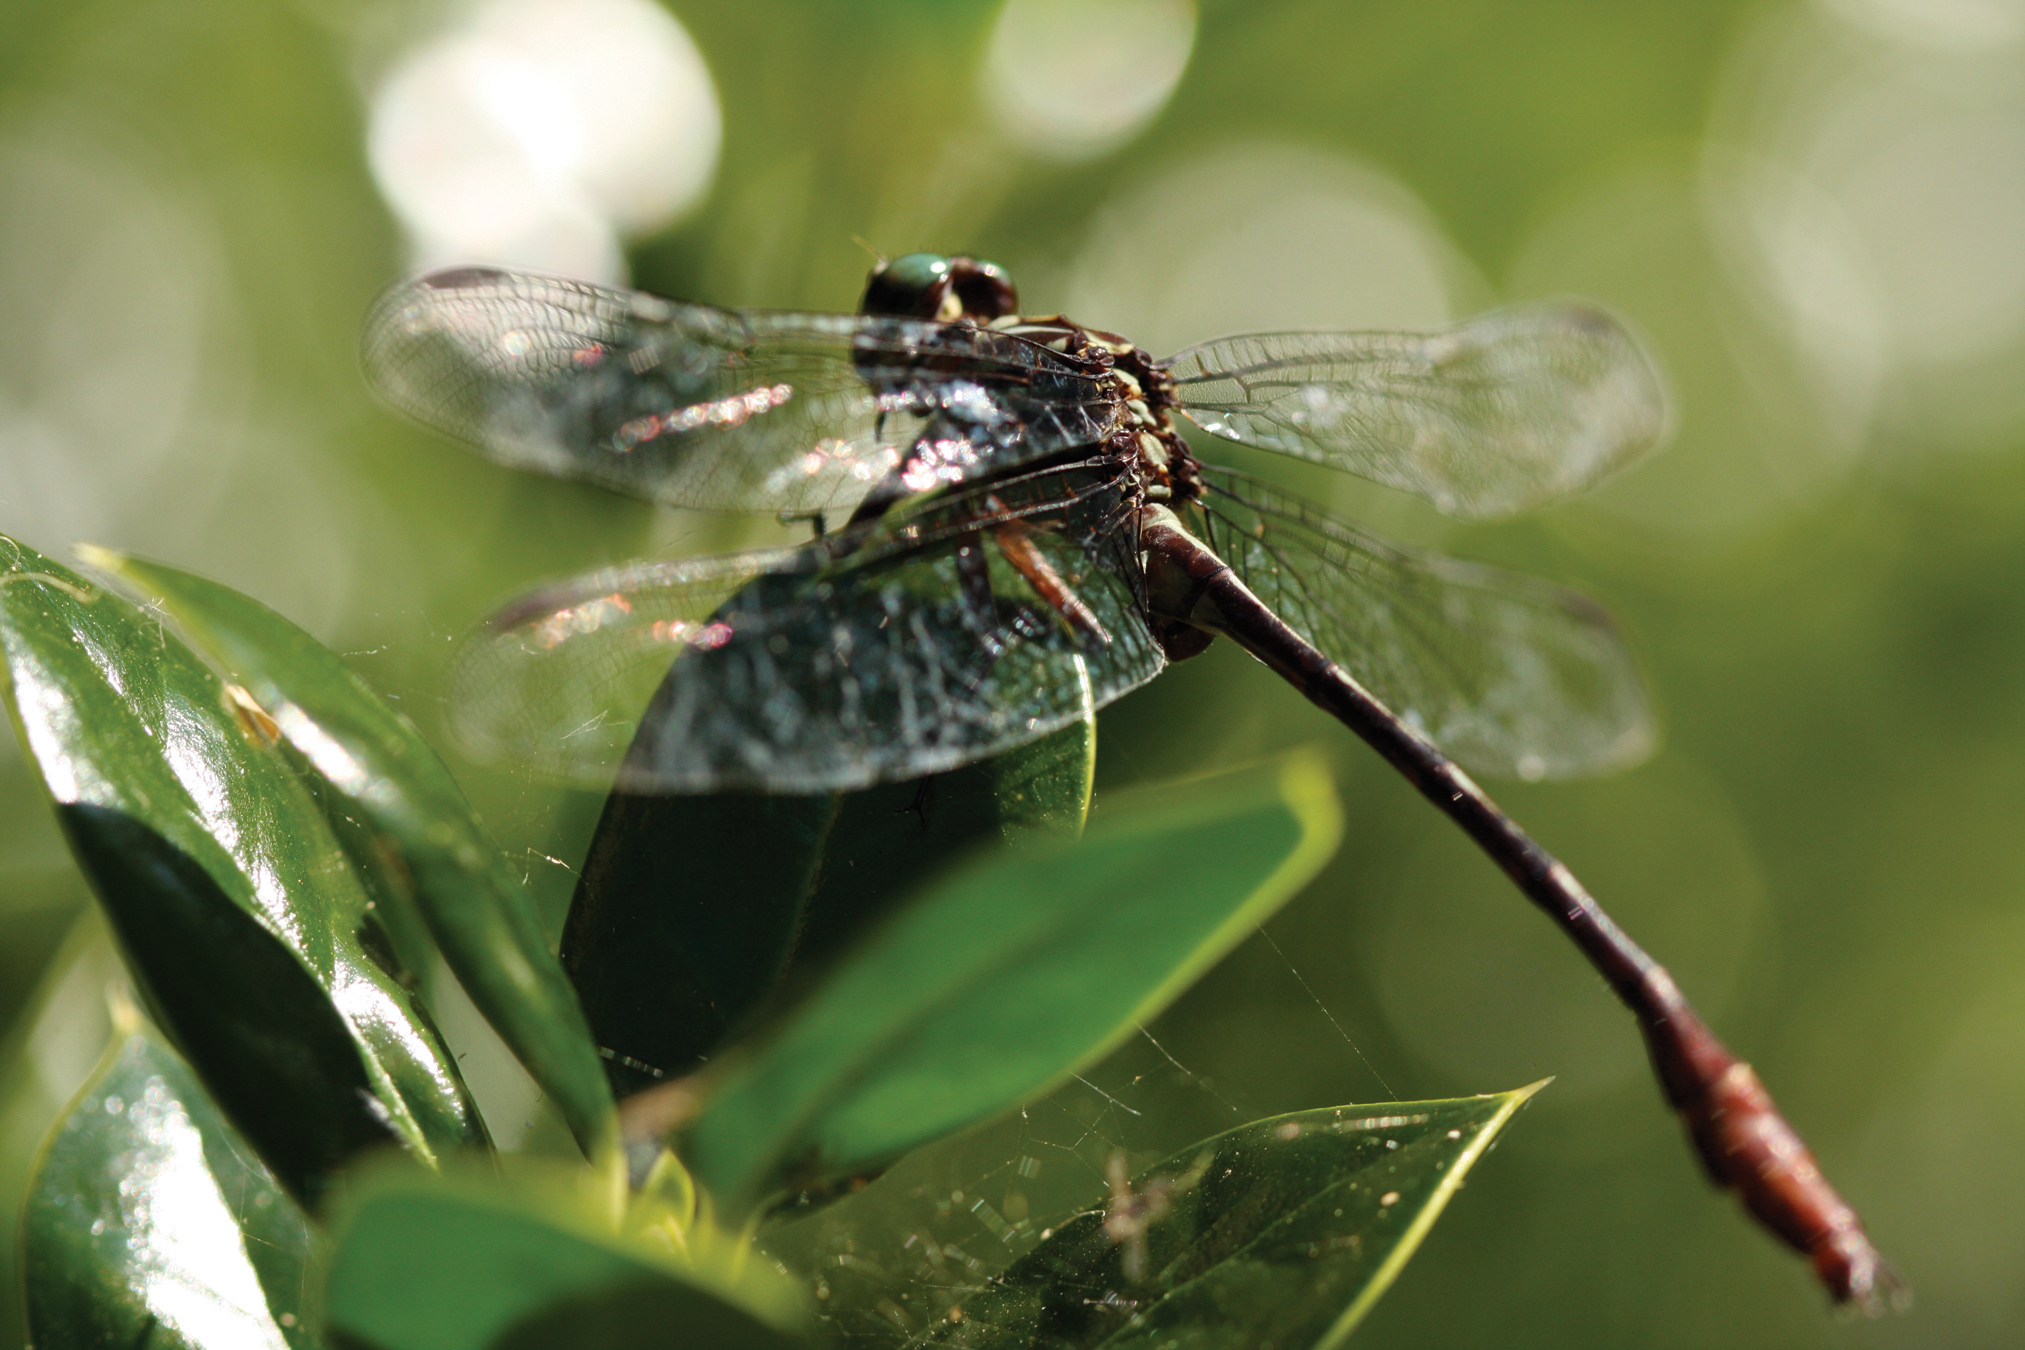 close up of dragonfly on plant